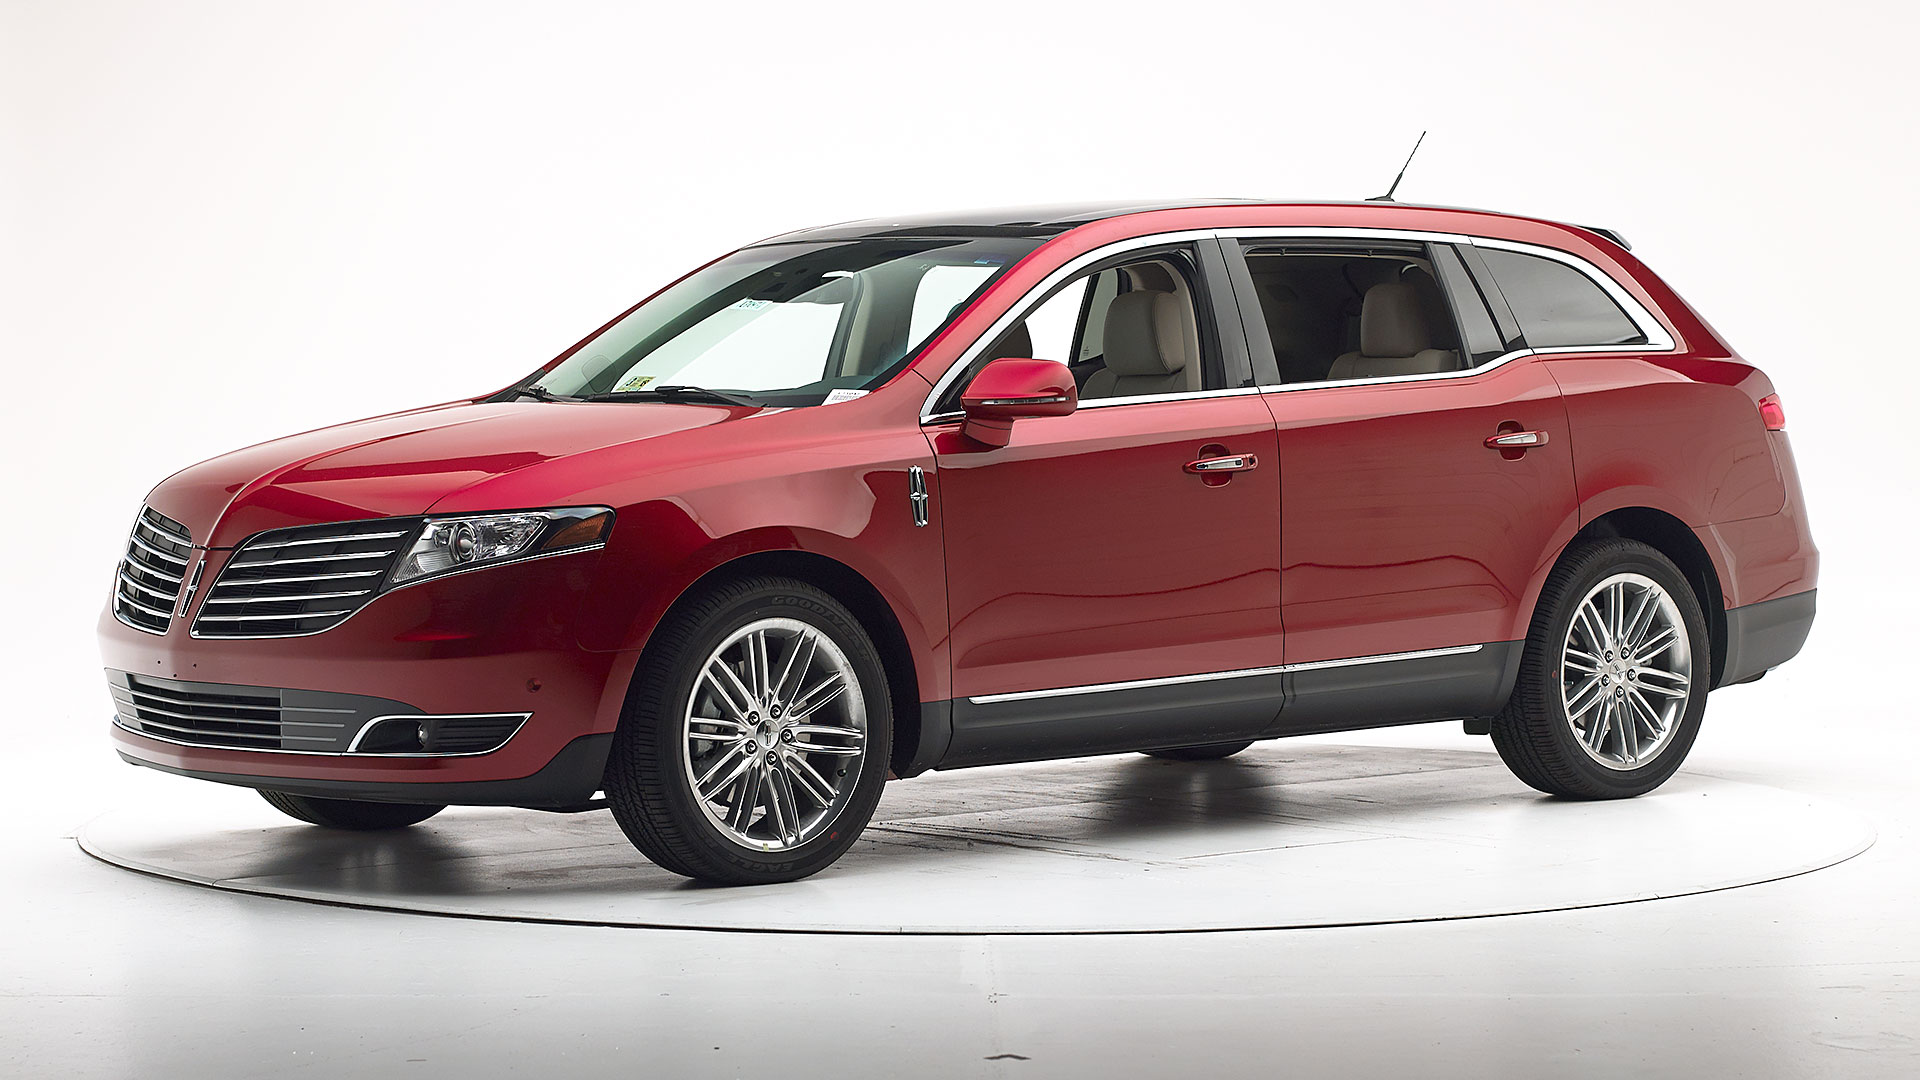 2018 Lincoln MKT 4-door SUV